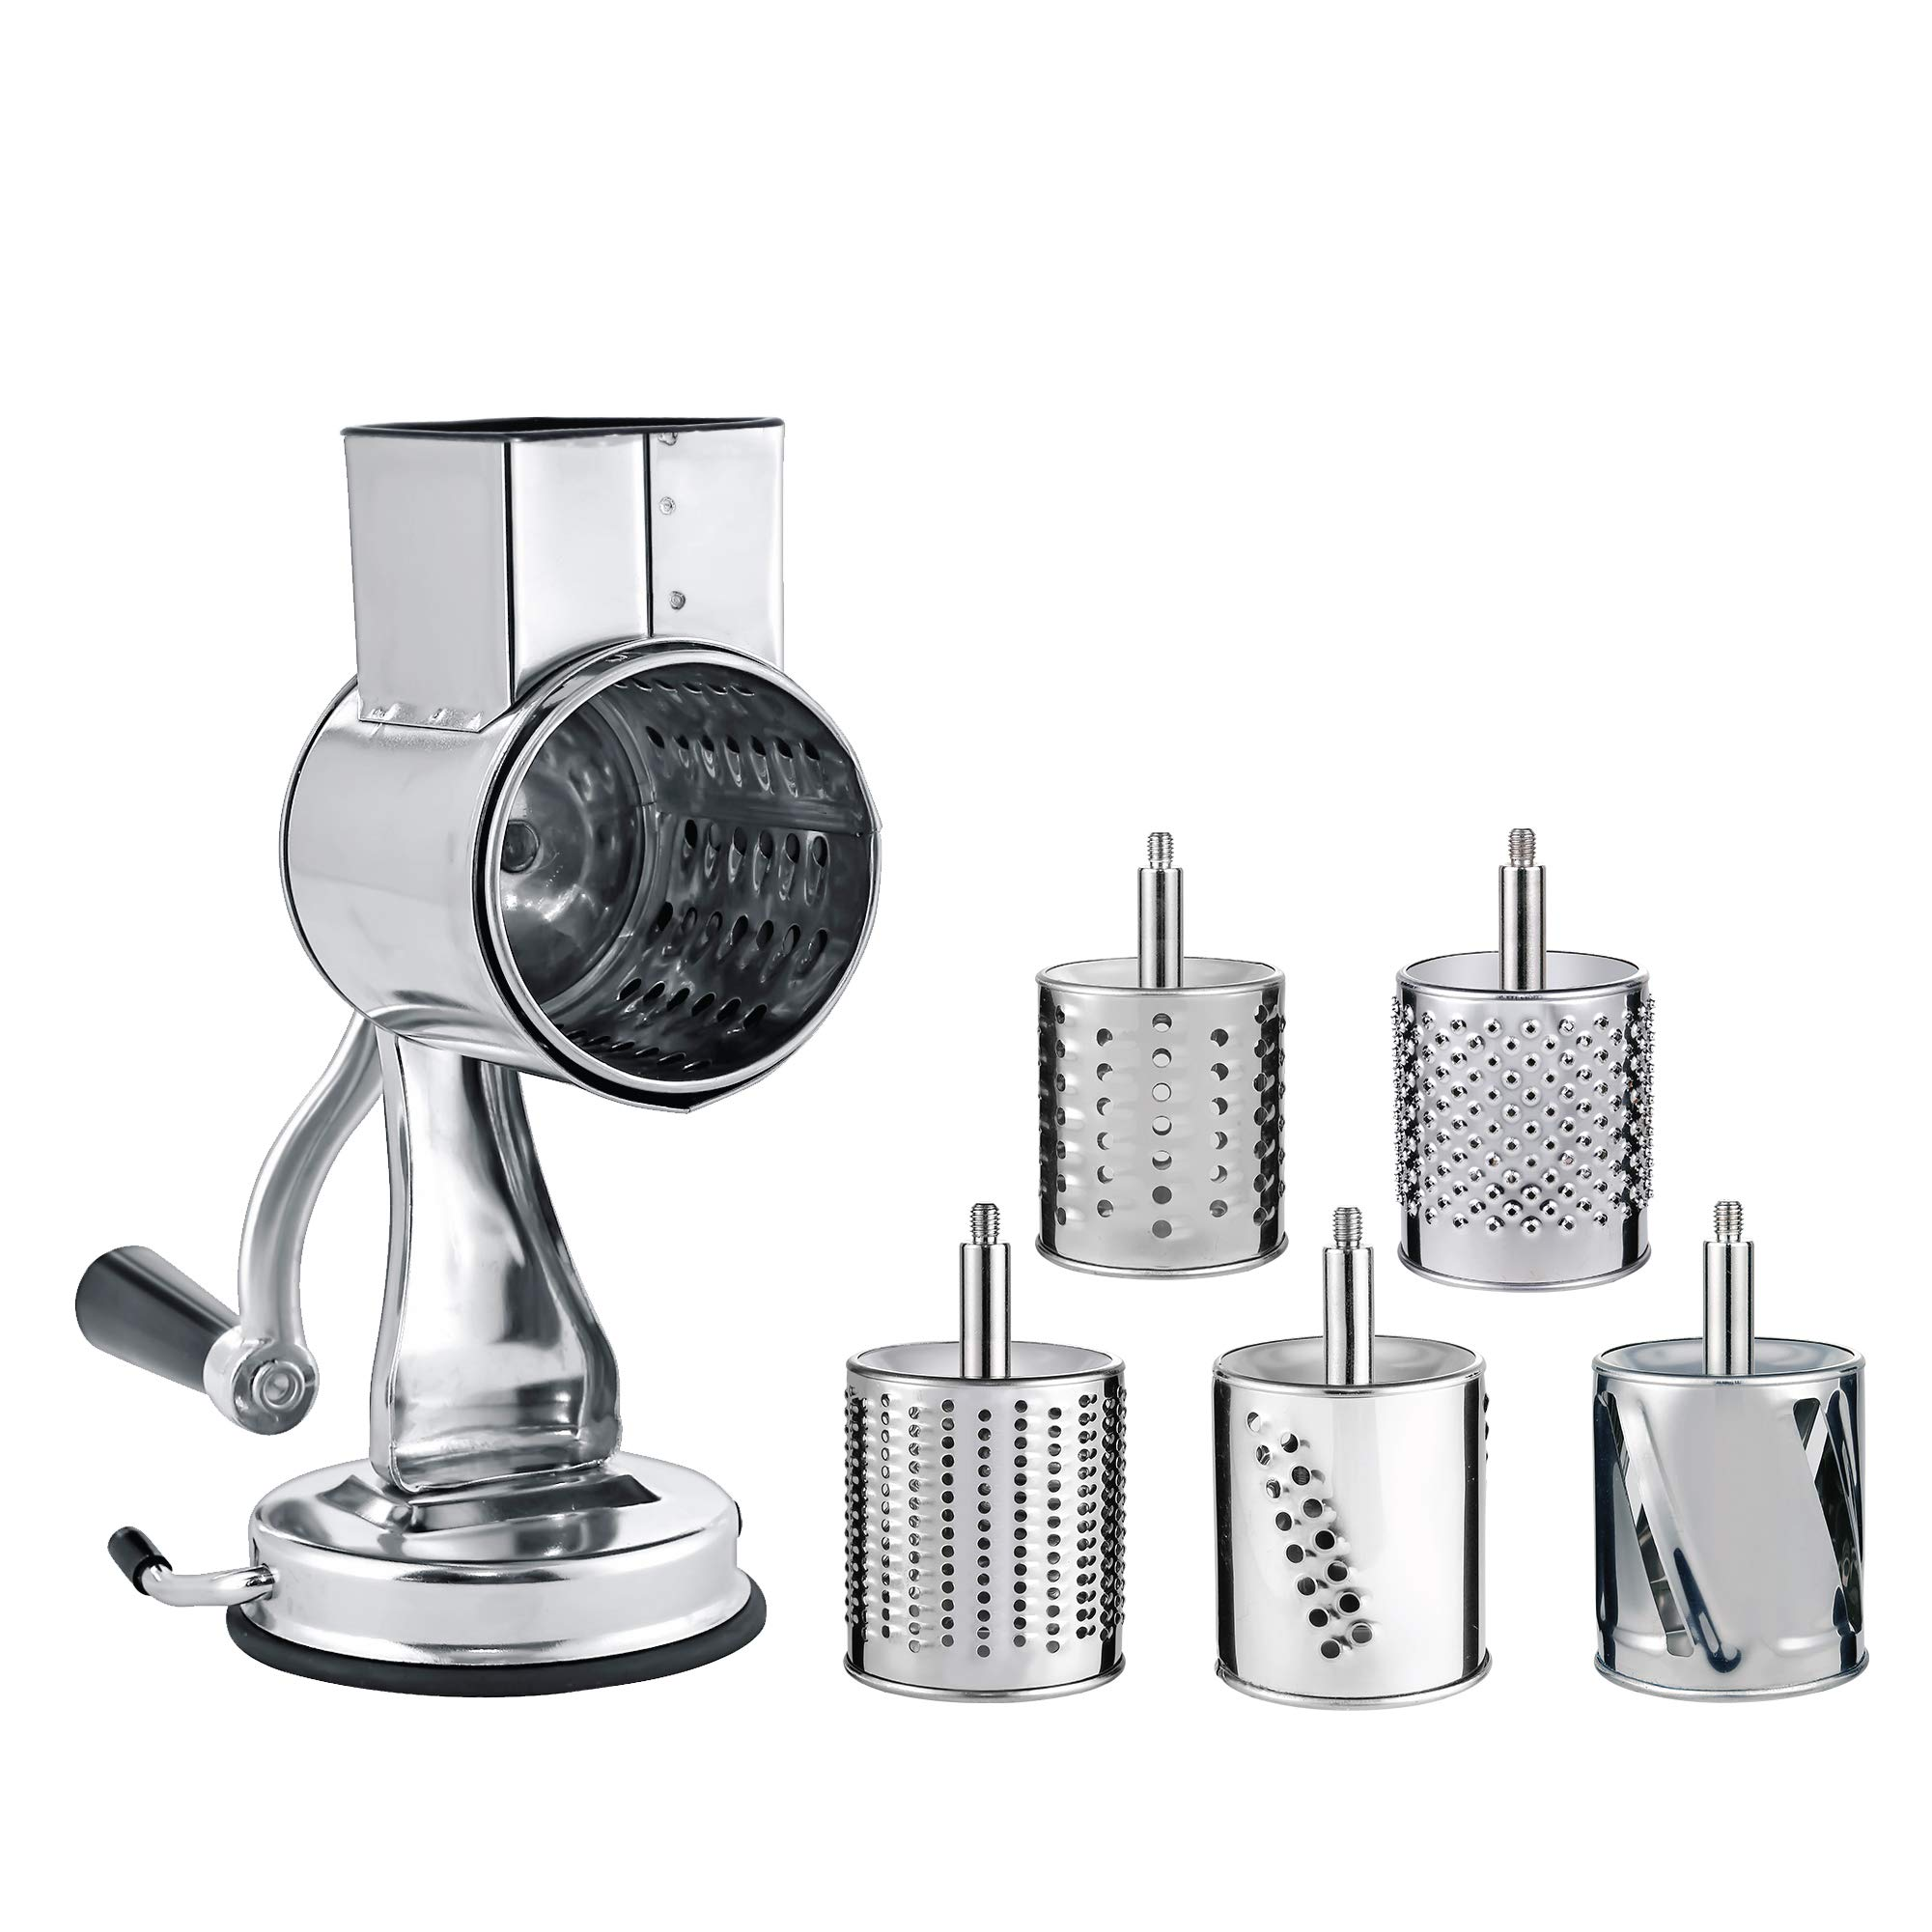 Stainless Steel Cheese Grater Rotary Chopper - MASTER FENG 5 Blades Included Kitchen Vegetable Shredder Salad Slicer, Multi-Use Hand Cutter Graters for Nut, Potato by MASTER FENG